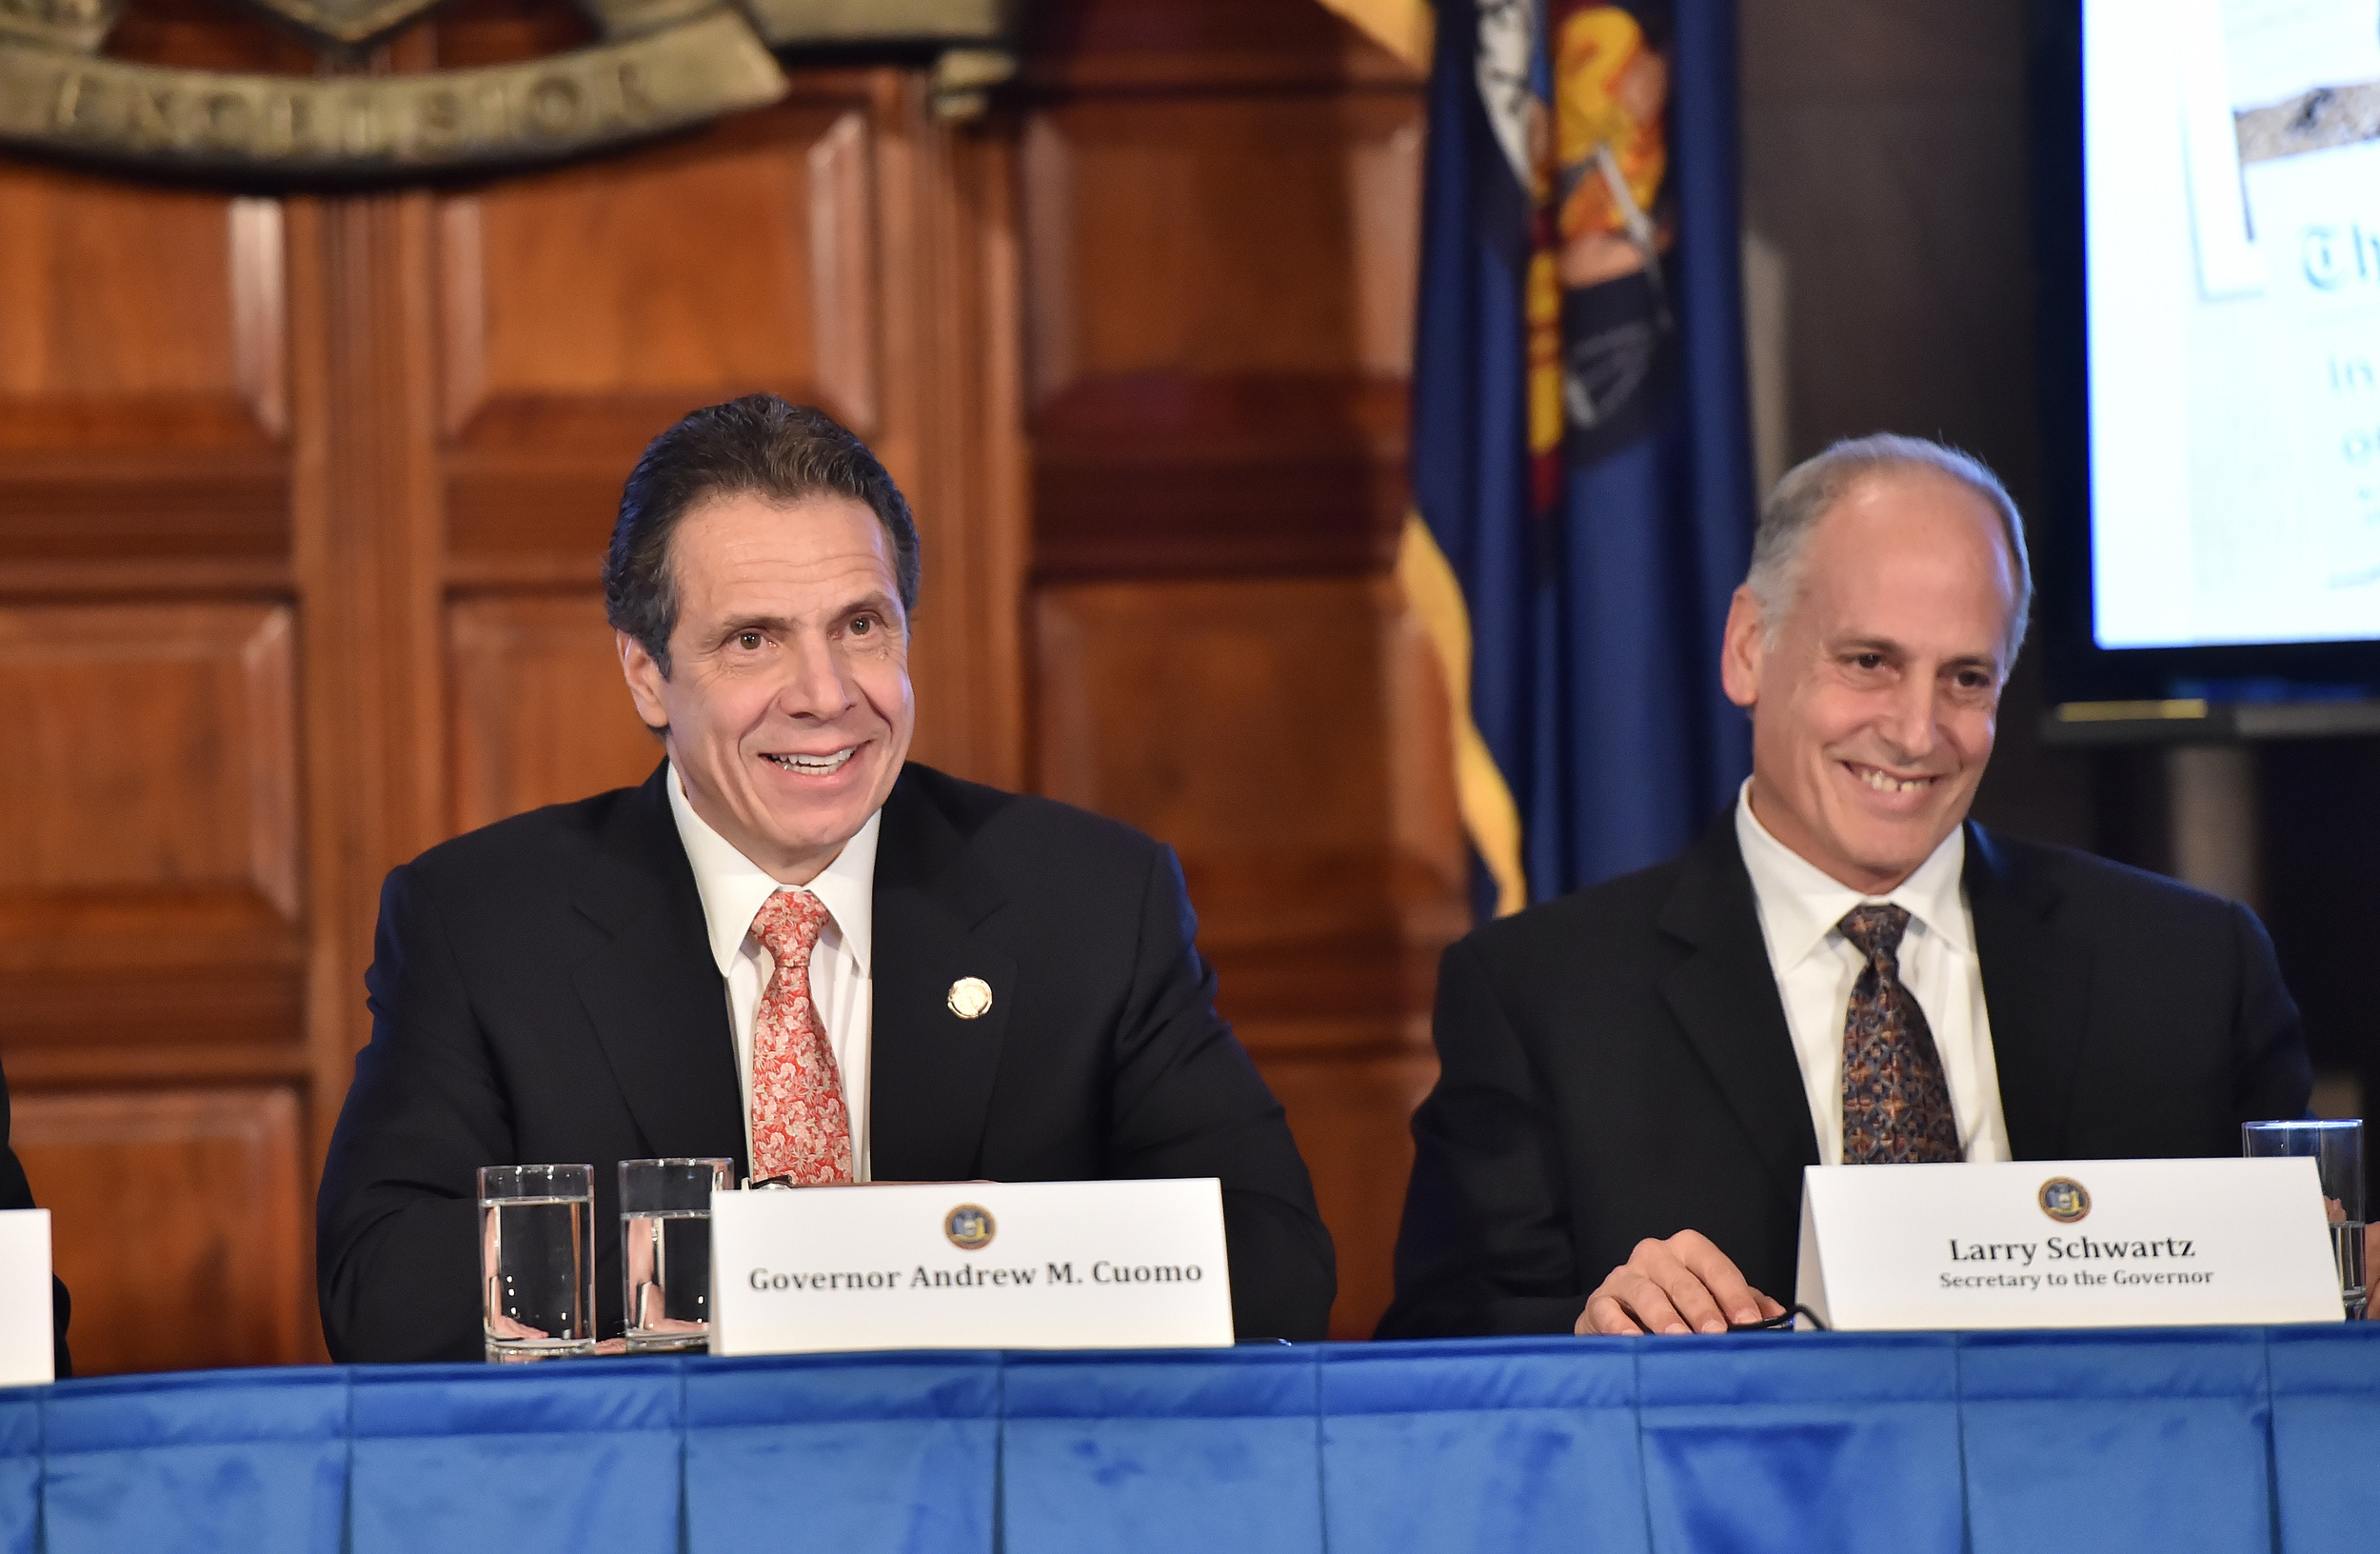 Lawrence Schwartz , right, with Governor  Andrew Cuomo at a cabinet meeting in 2014. Mr. Schwartz was given a controversial, temporary job after he publicly stepped down as the governor's secretary. Source : Official Photograph/Kevin P. Coughlin/Office of the Governor/Flickr